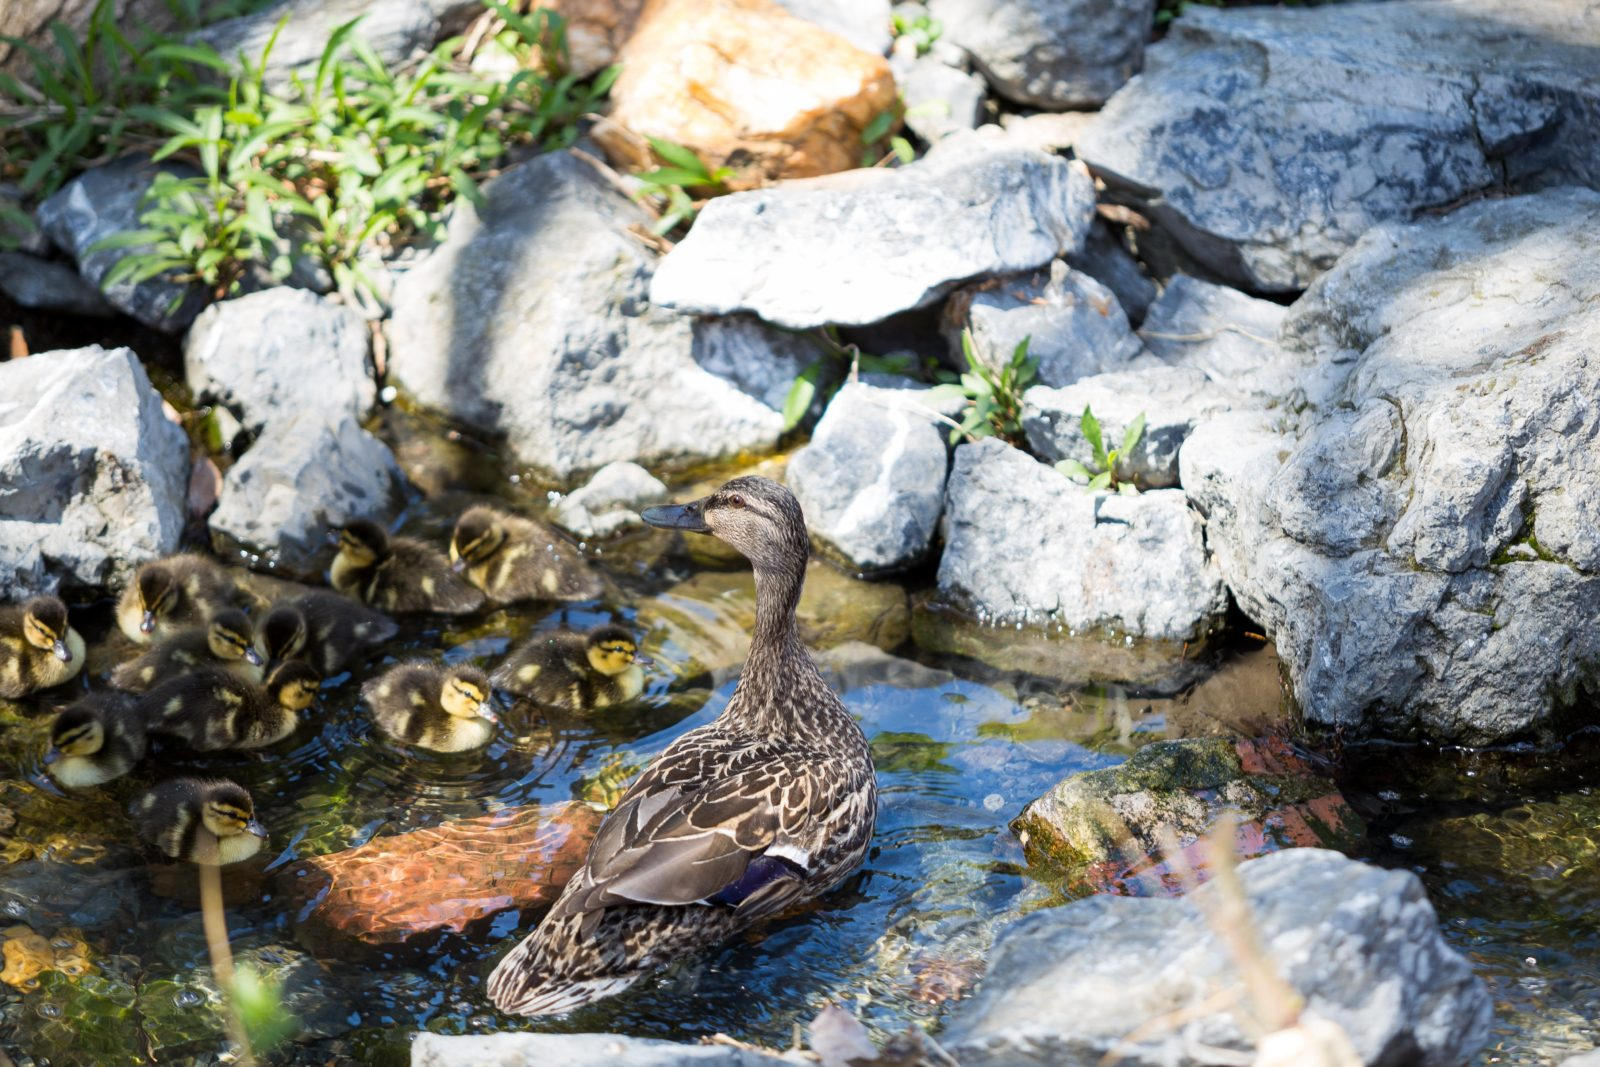 During US lunch, mother duck and her chicks ventured forth from the courtyard to their new home in the wider world.